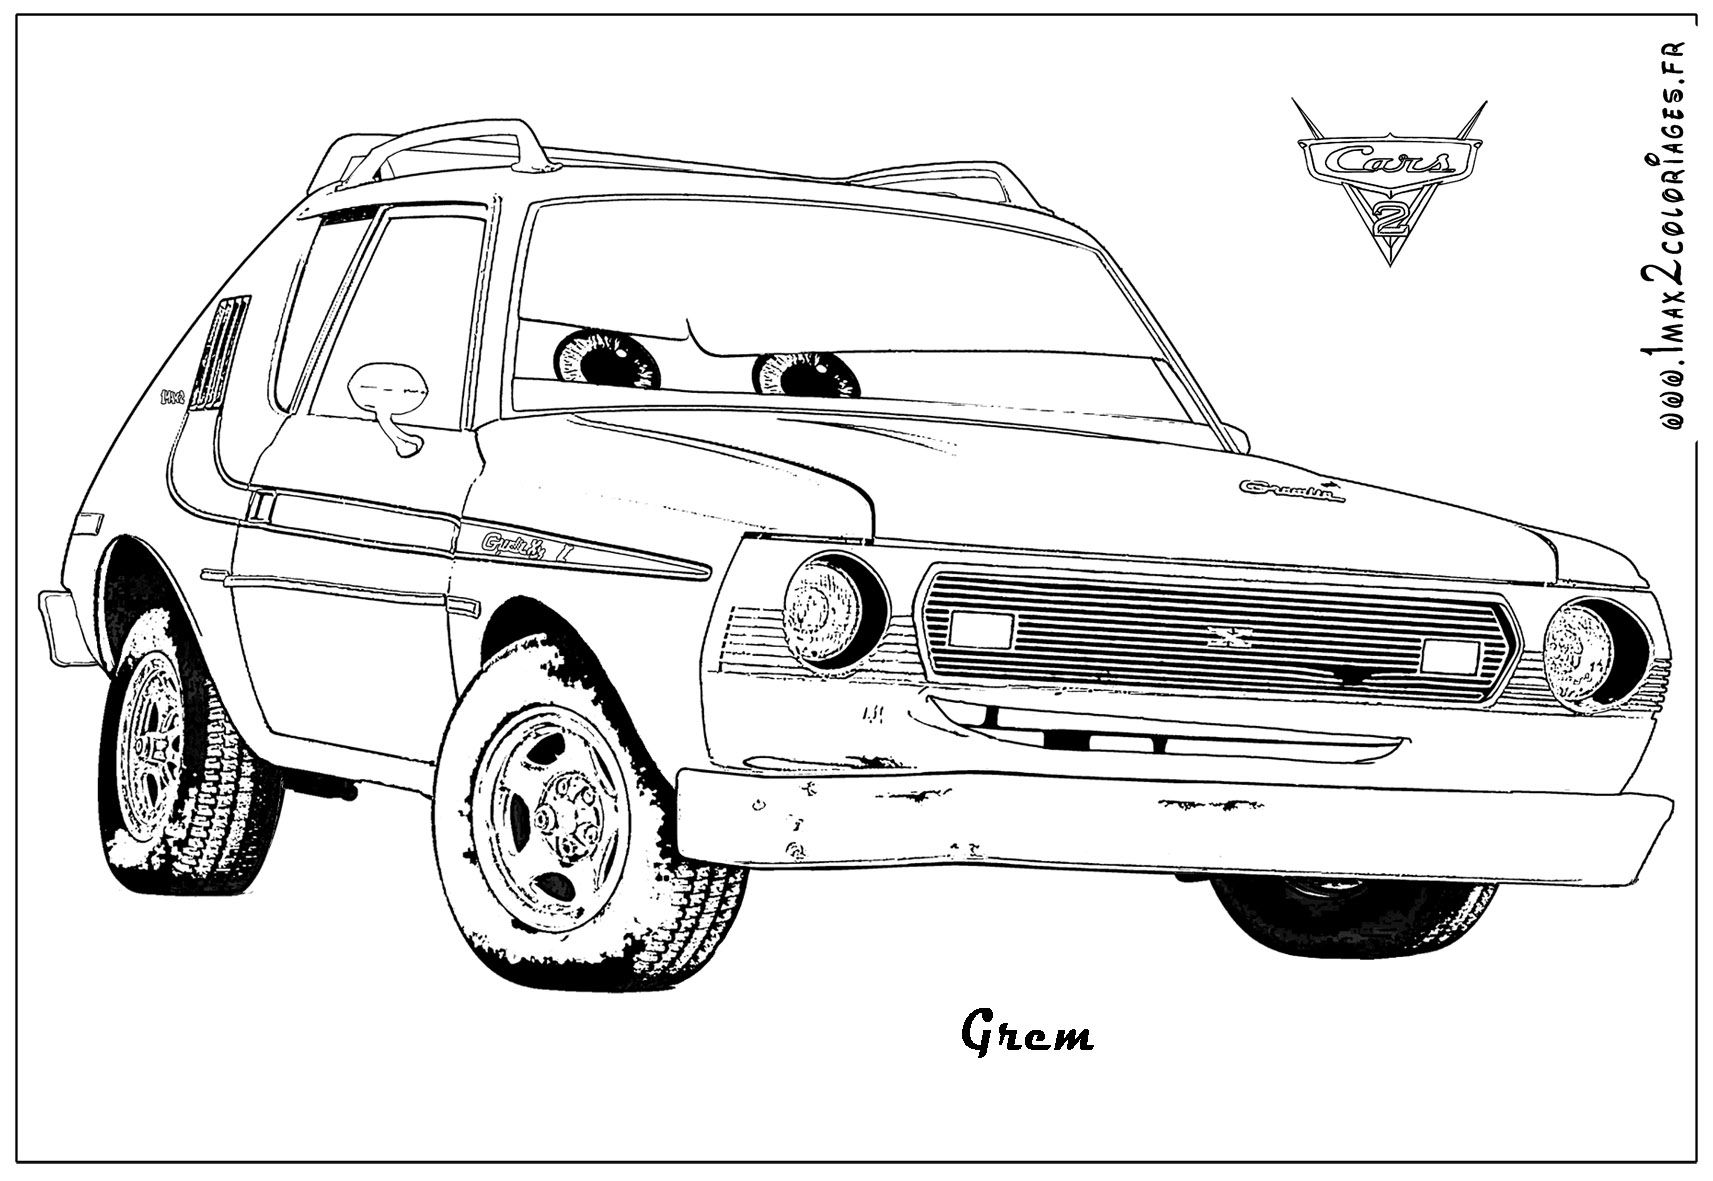 cars 2 coloring pages Cars 2 Printable Coloring Pages Grem cars 2 Colouring | artworks  cars 2 coloring pages